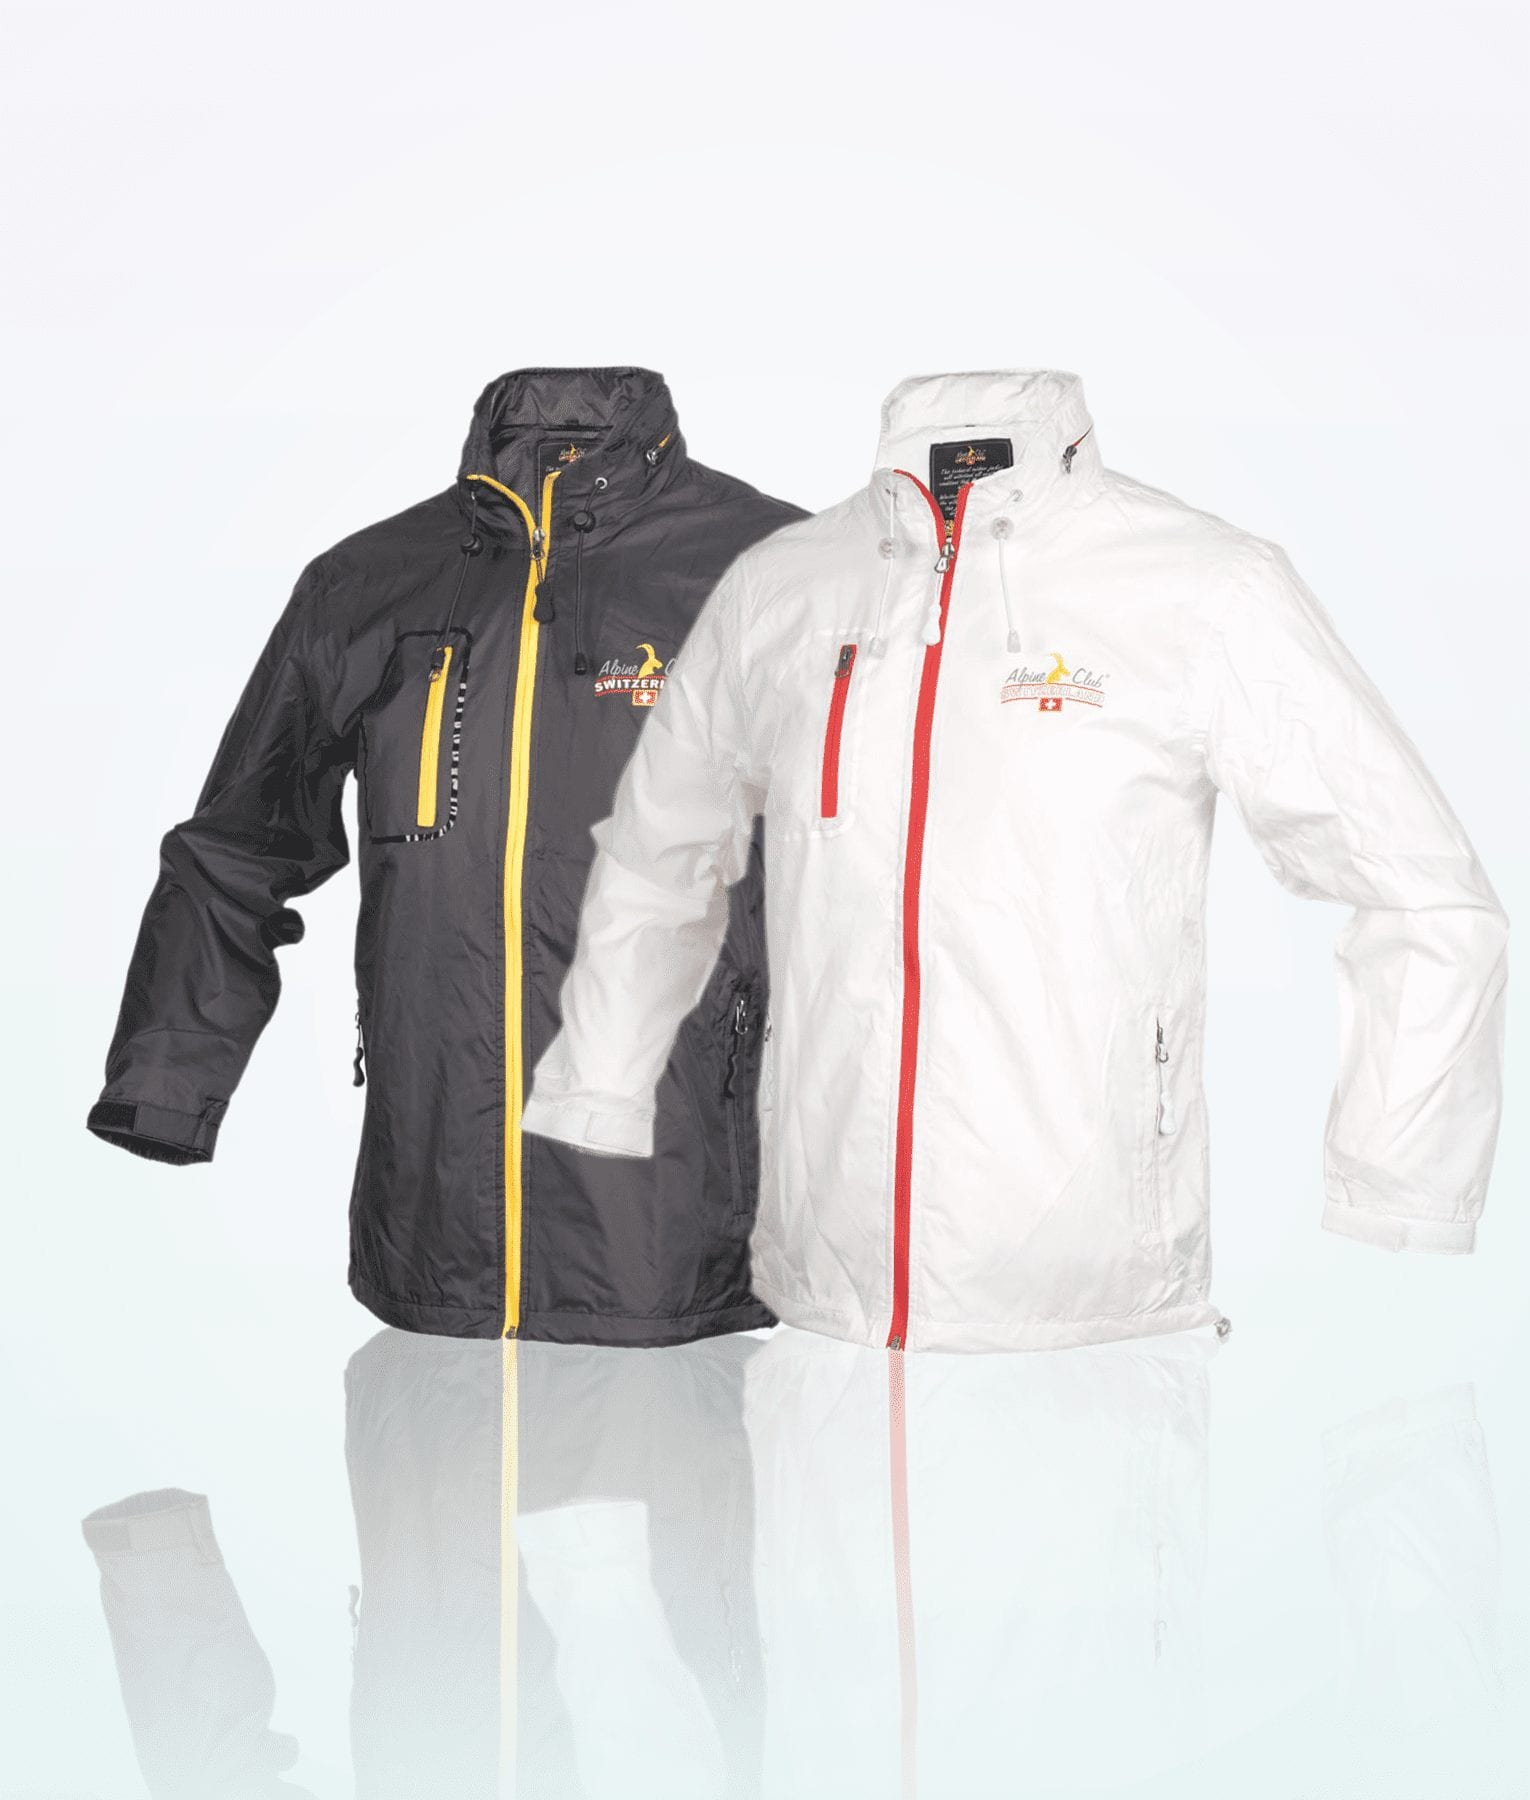 outdoor-jacket-cagoule-windproof